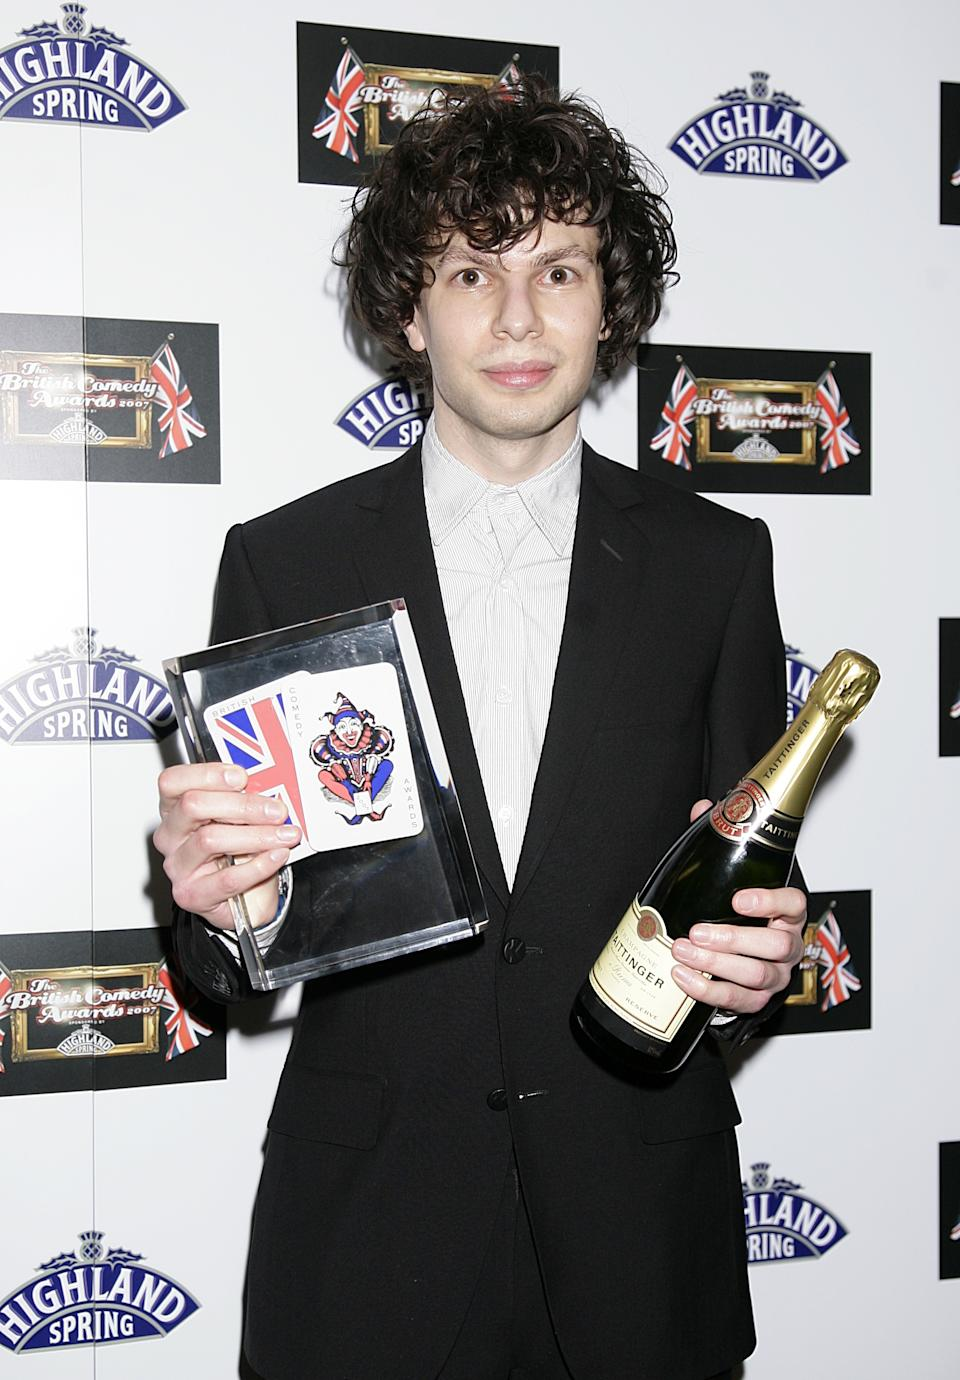 Simon Amstell with the Best Comedy Entertainment award recieved for Never Mind The Buzzcocks at the 2007 British Comedy Awards at The London Studios, Upper Ground, London, SE1.   (Photo by Yui Mok - PA Images/PA Images via Getty Images)